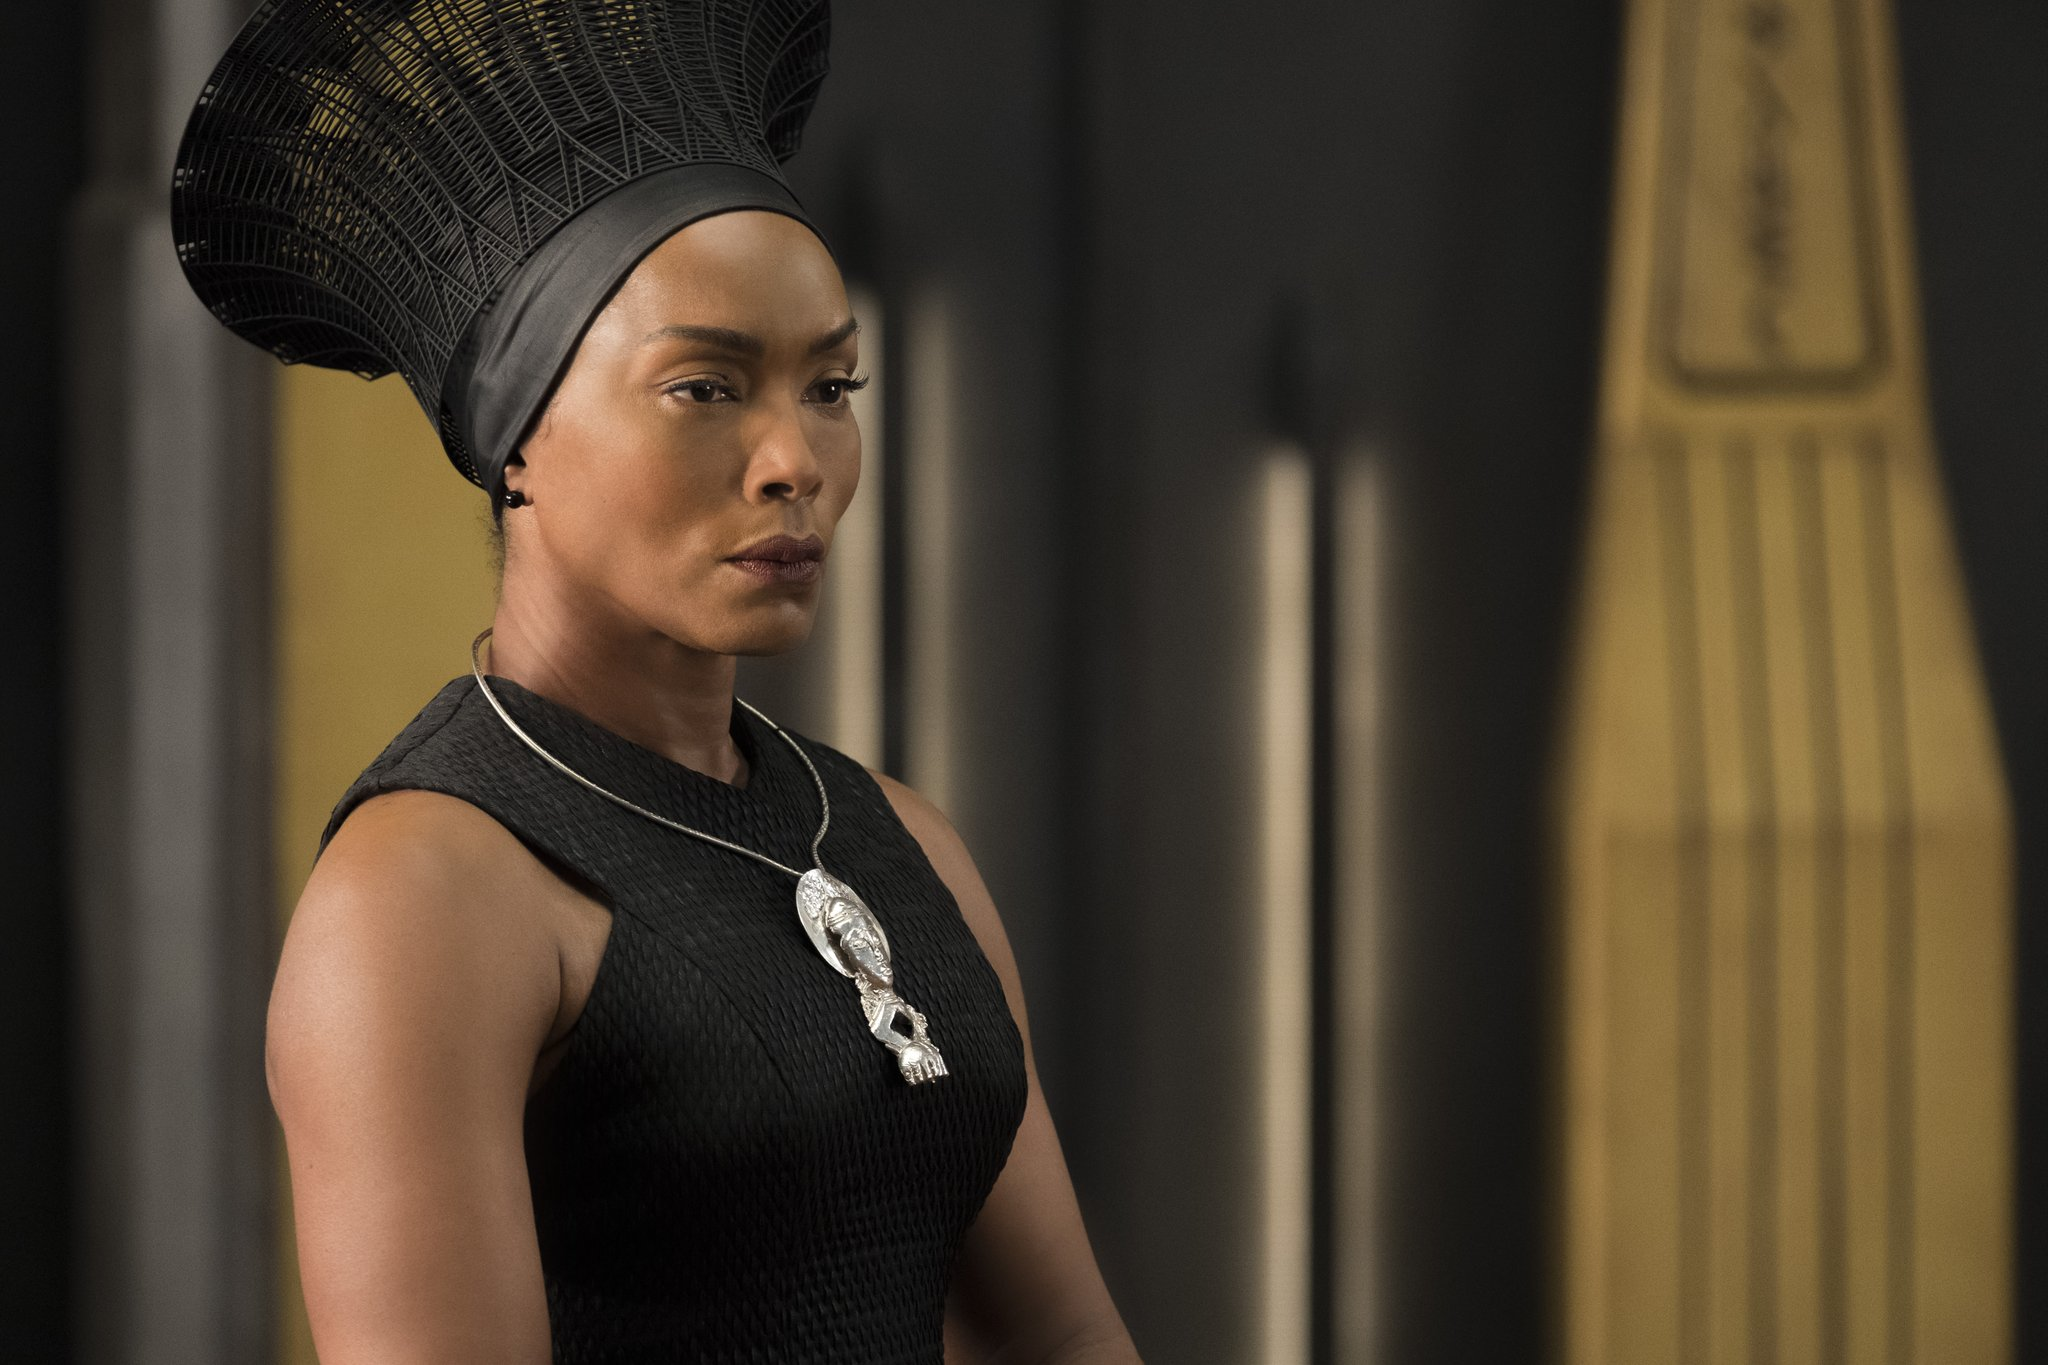 Angela Bassett Hints at the Future of Her 'Queen Ramonda' Character in Marvel Films